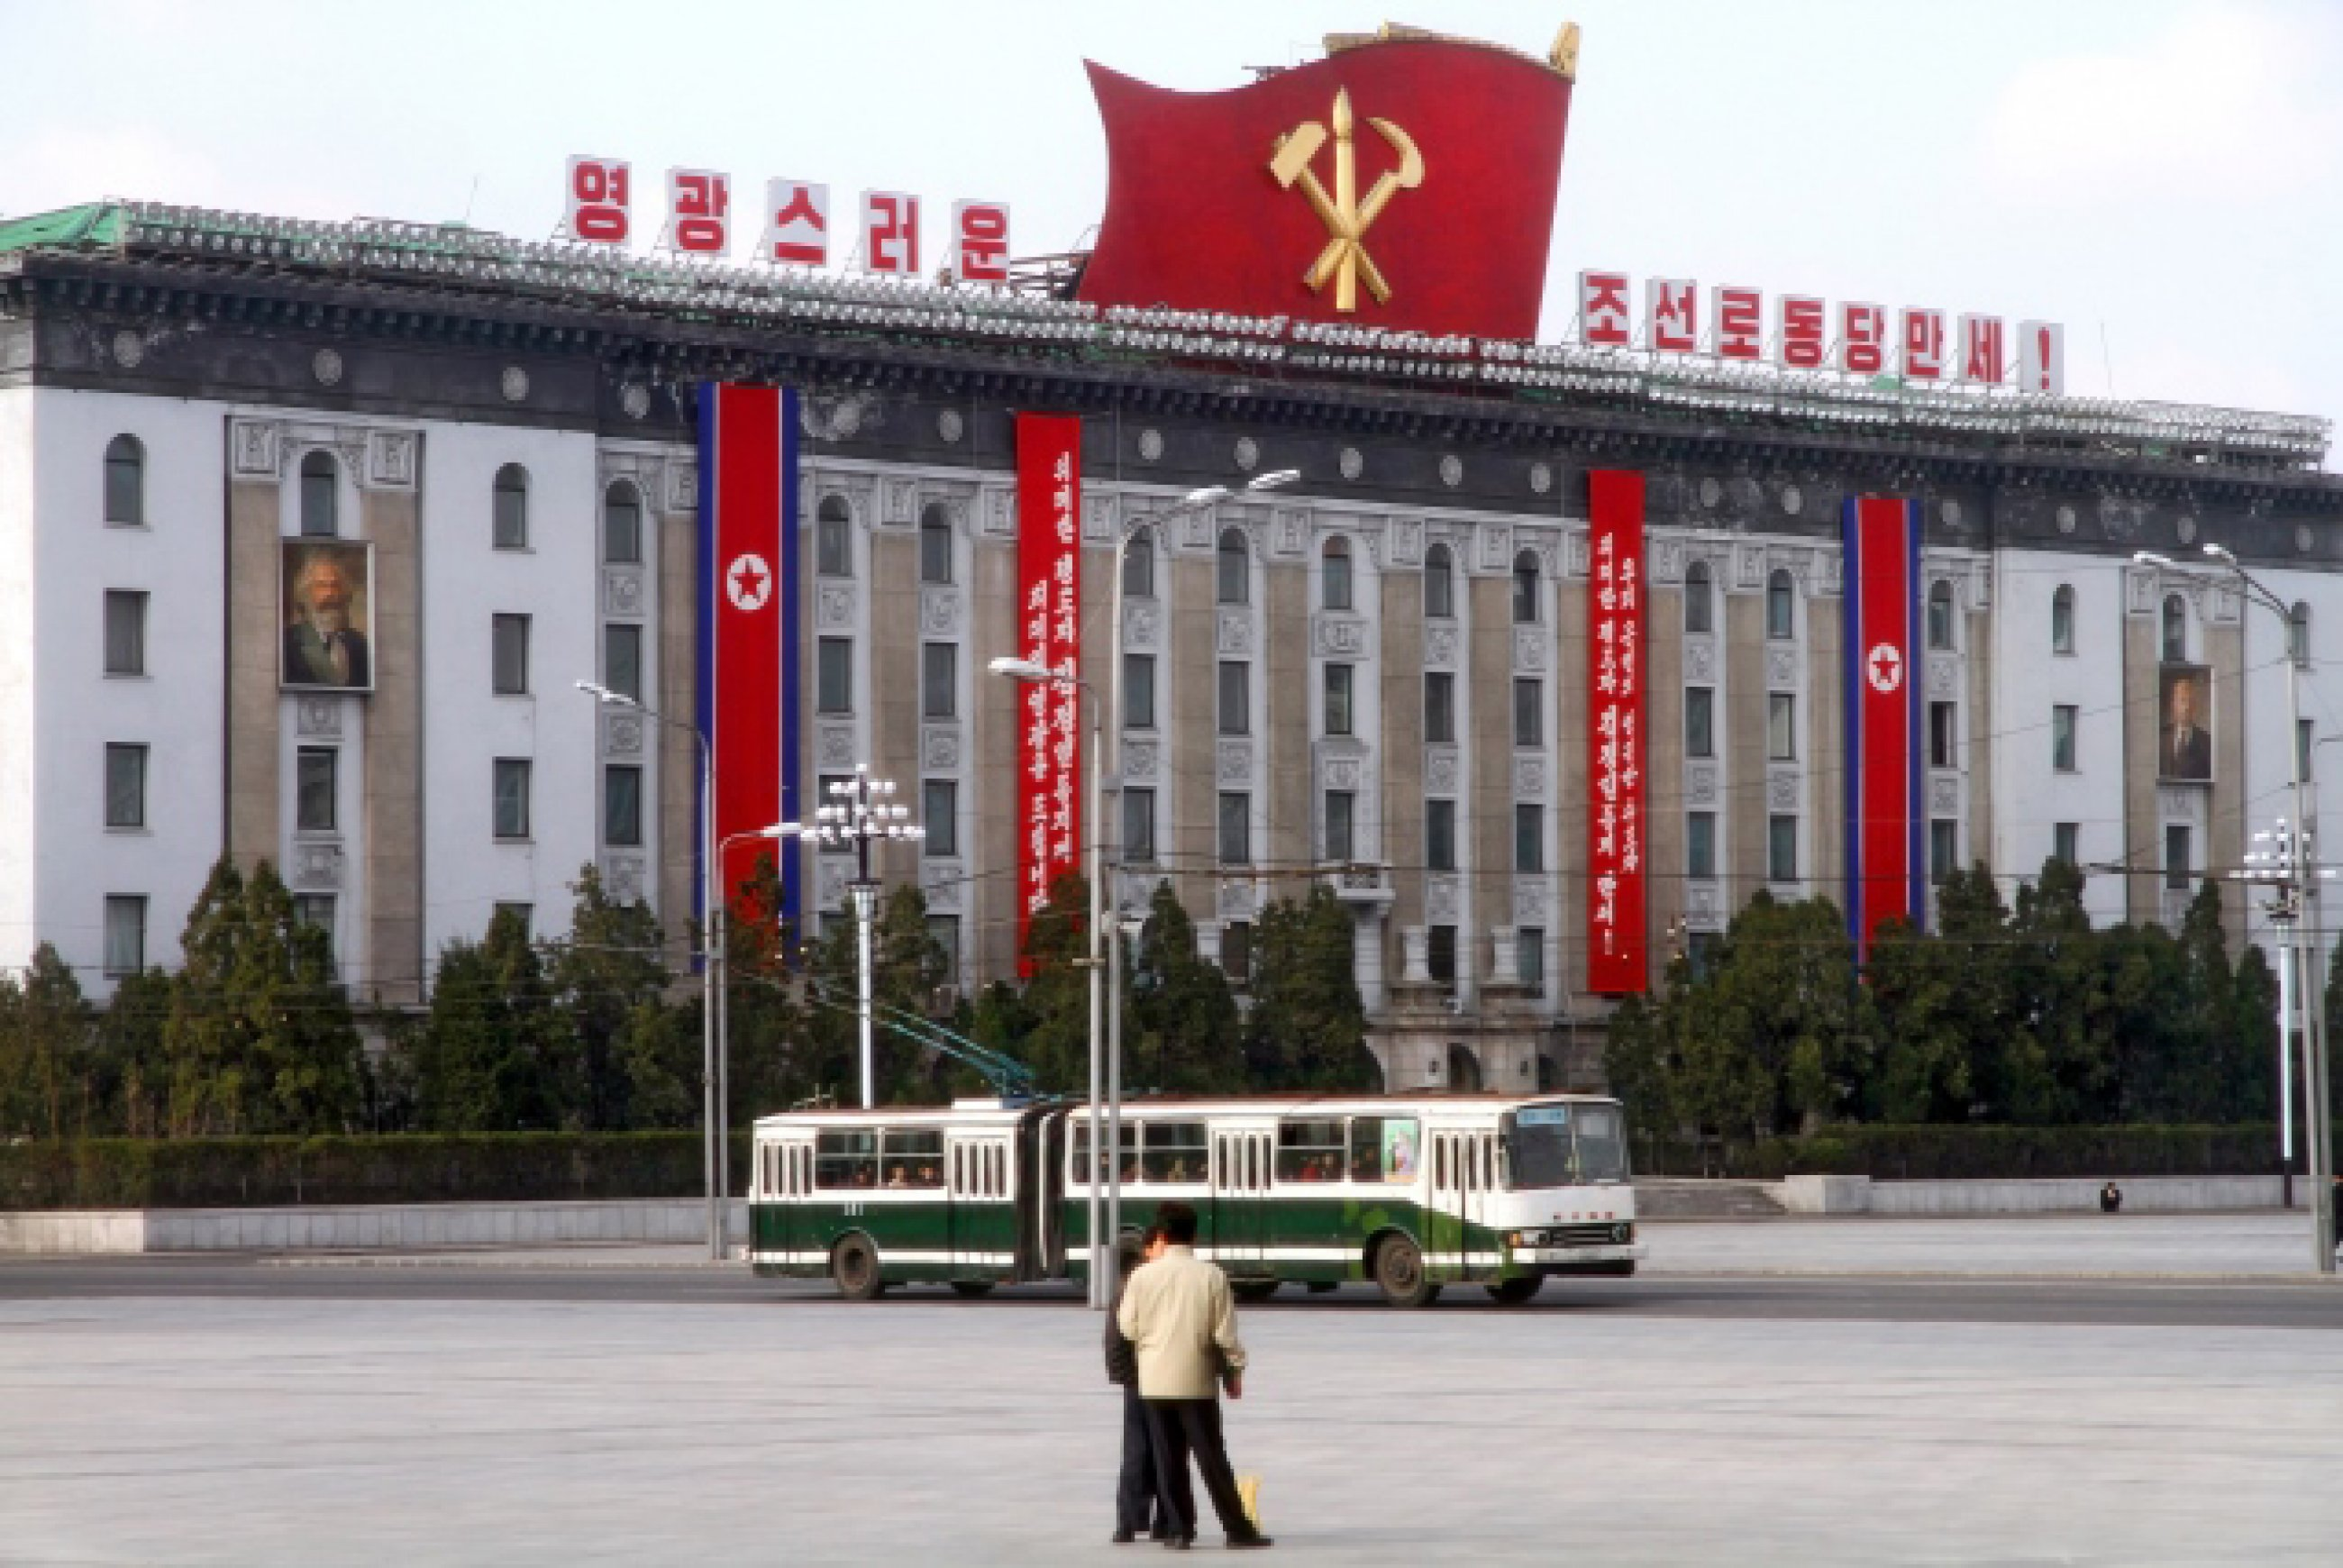 https://bubo.sk/uploads/galleries/7452/view-of-the-government-building-on-the-central-square-of-kim-il-sung-of-pyongyang-capital-of-the-north-korea.jpg